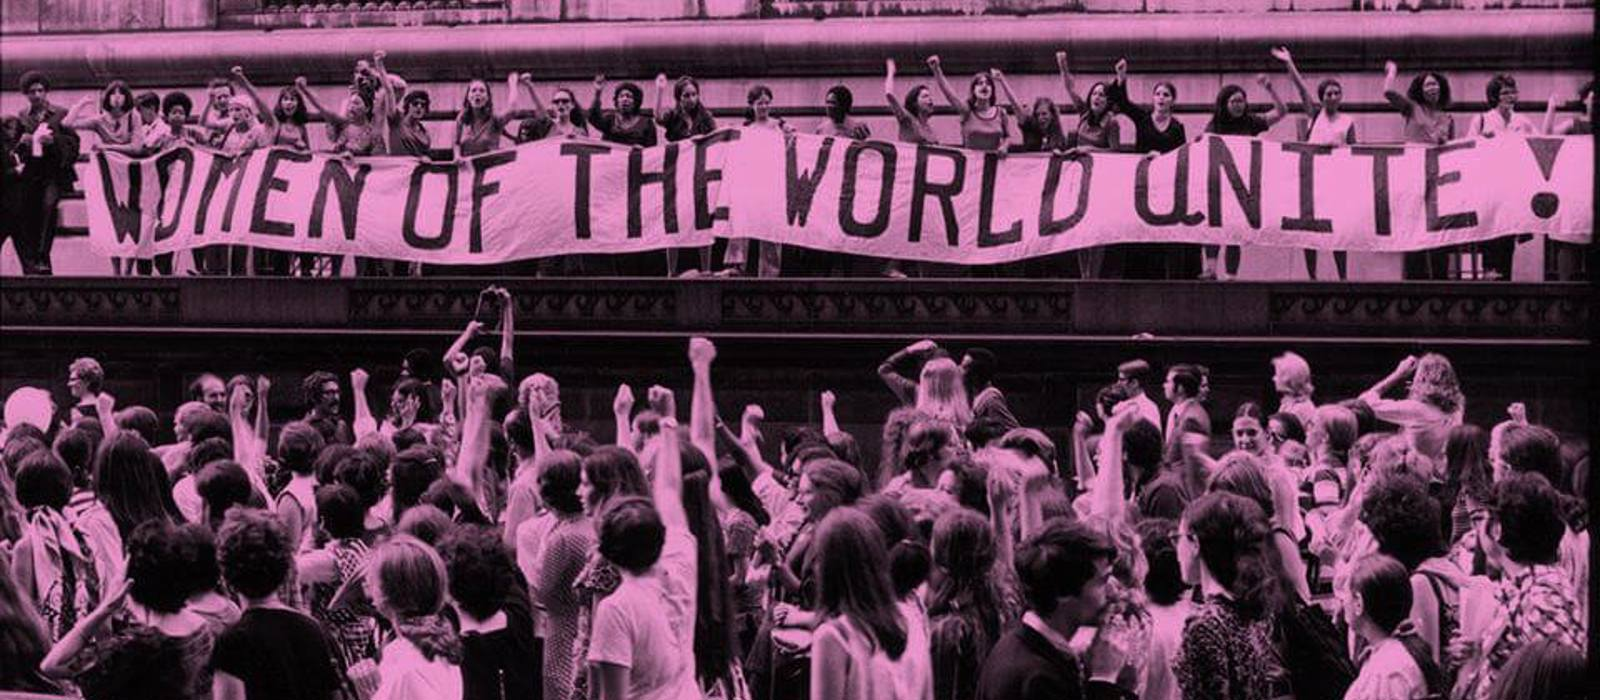 women of the world unite archive photo - protest banner and crowd